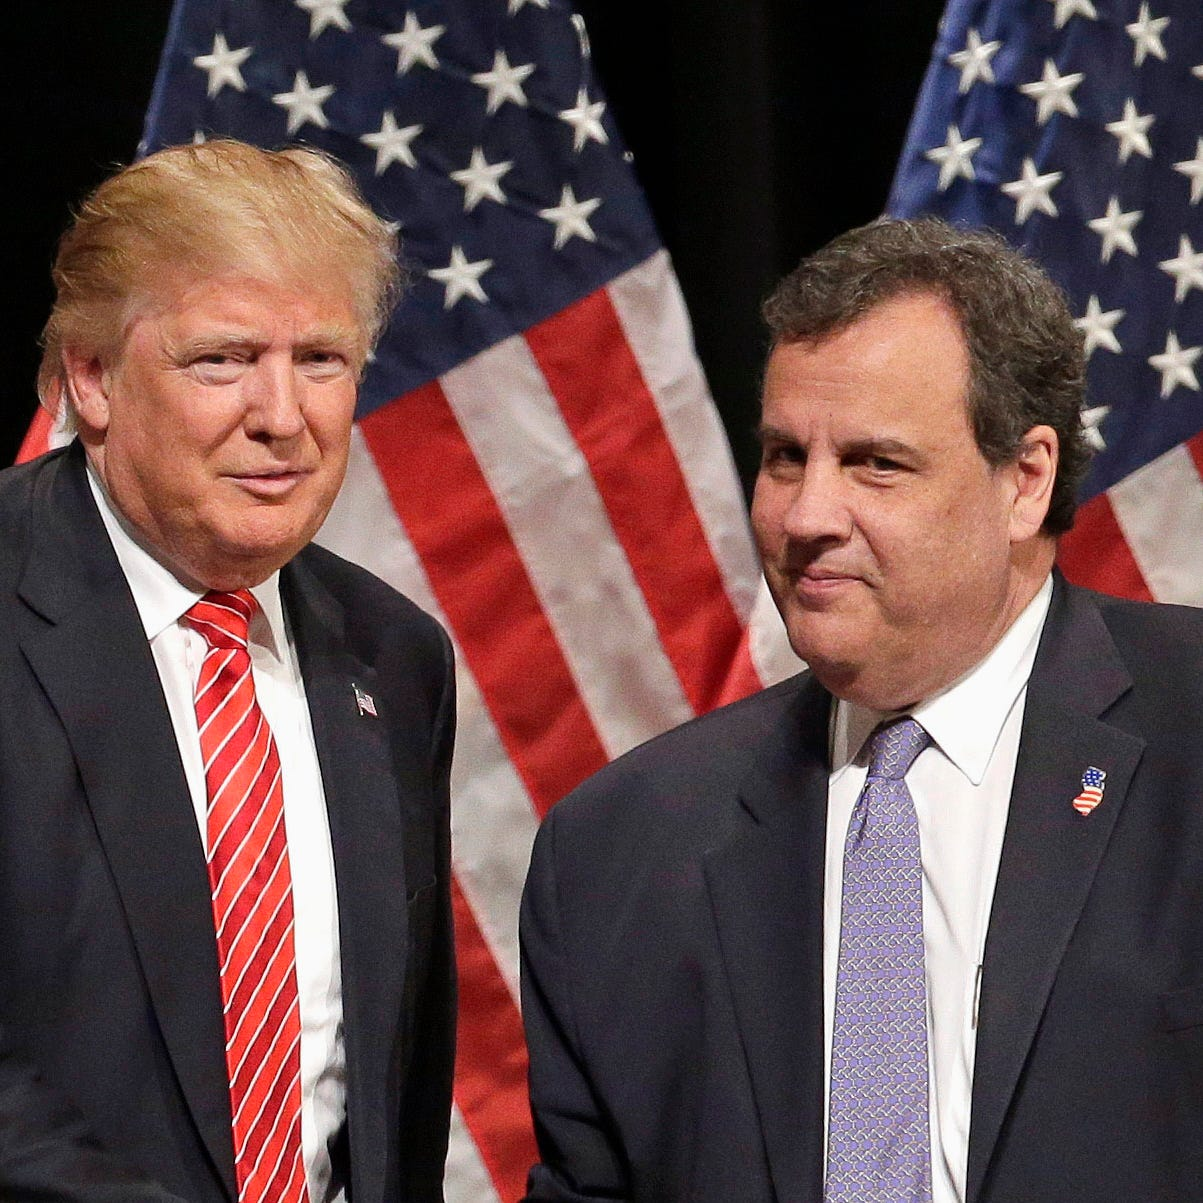 In this March 14, 2016 file photo, Republican presidential candidate Donald Trump shakes hands with New Jersey Gov. Chris Christie in Hickory, N.C.